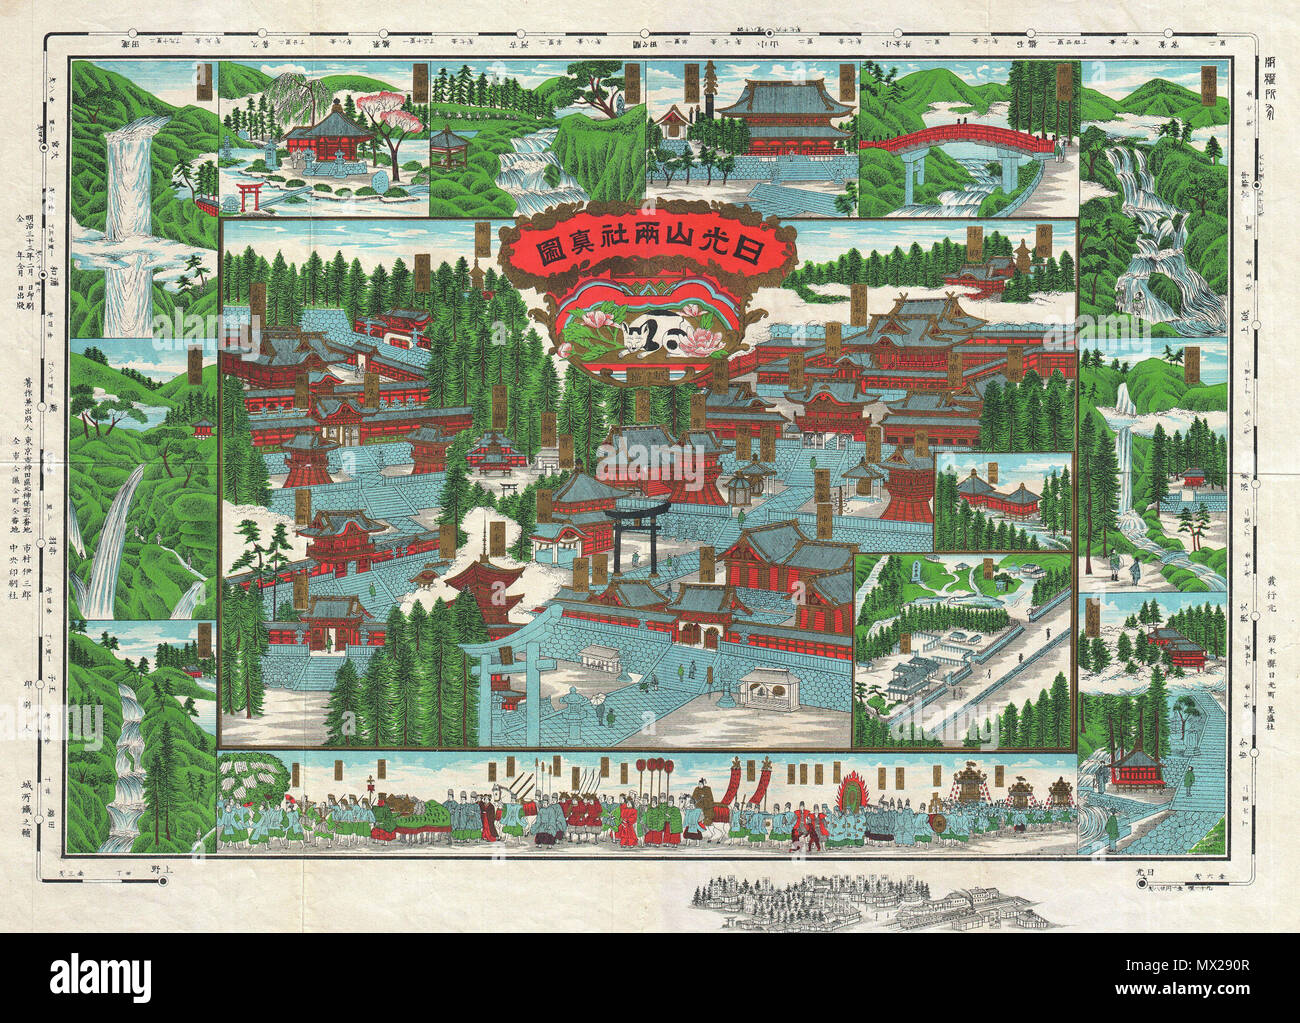 ec0dc0f2042c33 Nikko . English  This is an extremely attractive c. 1901 Japanese ...